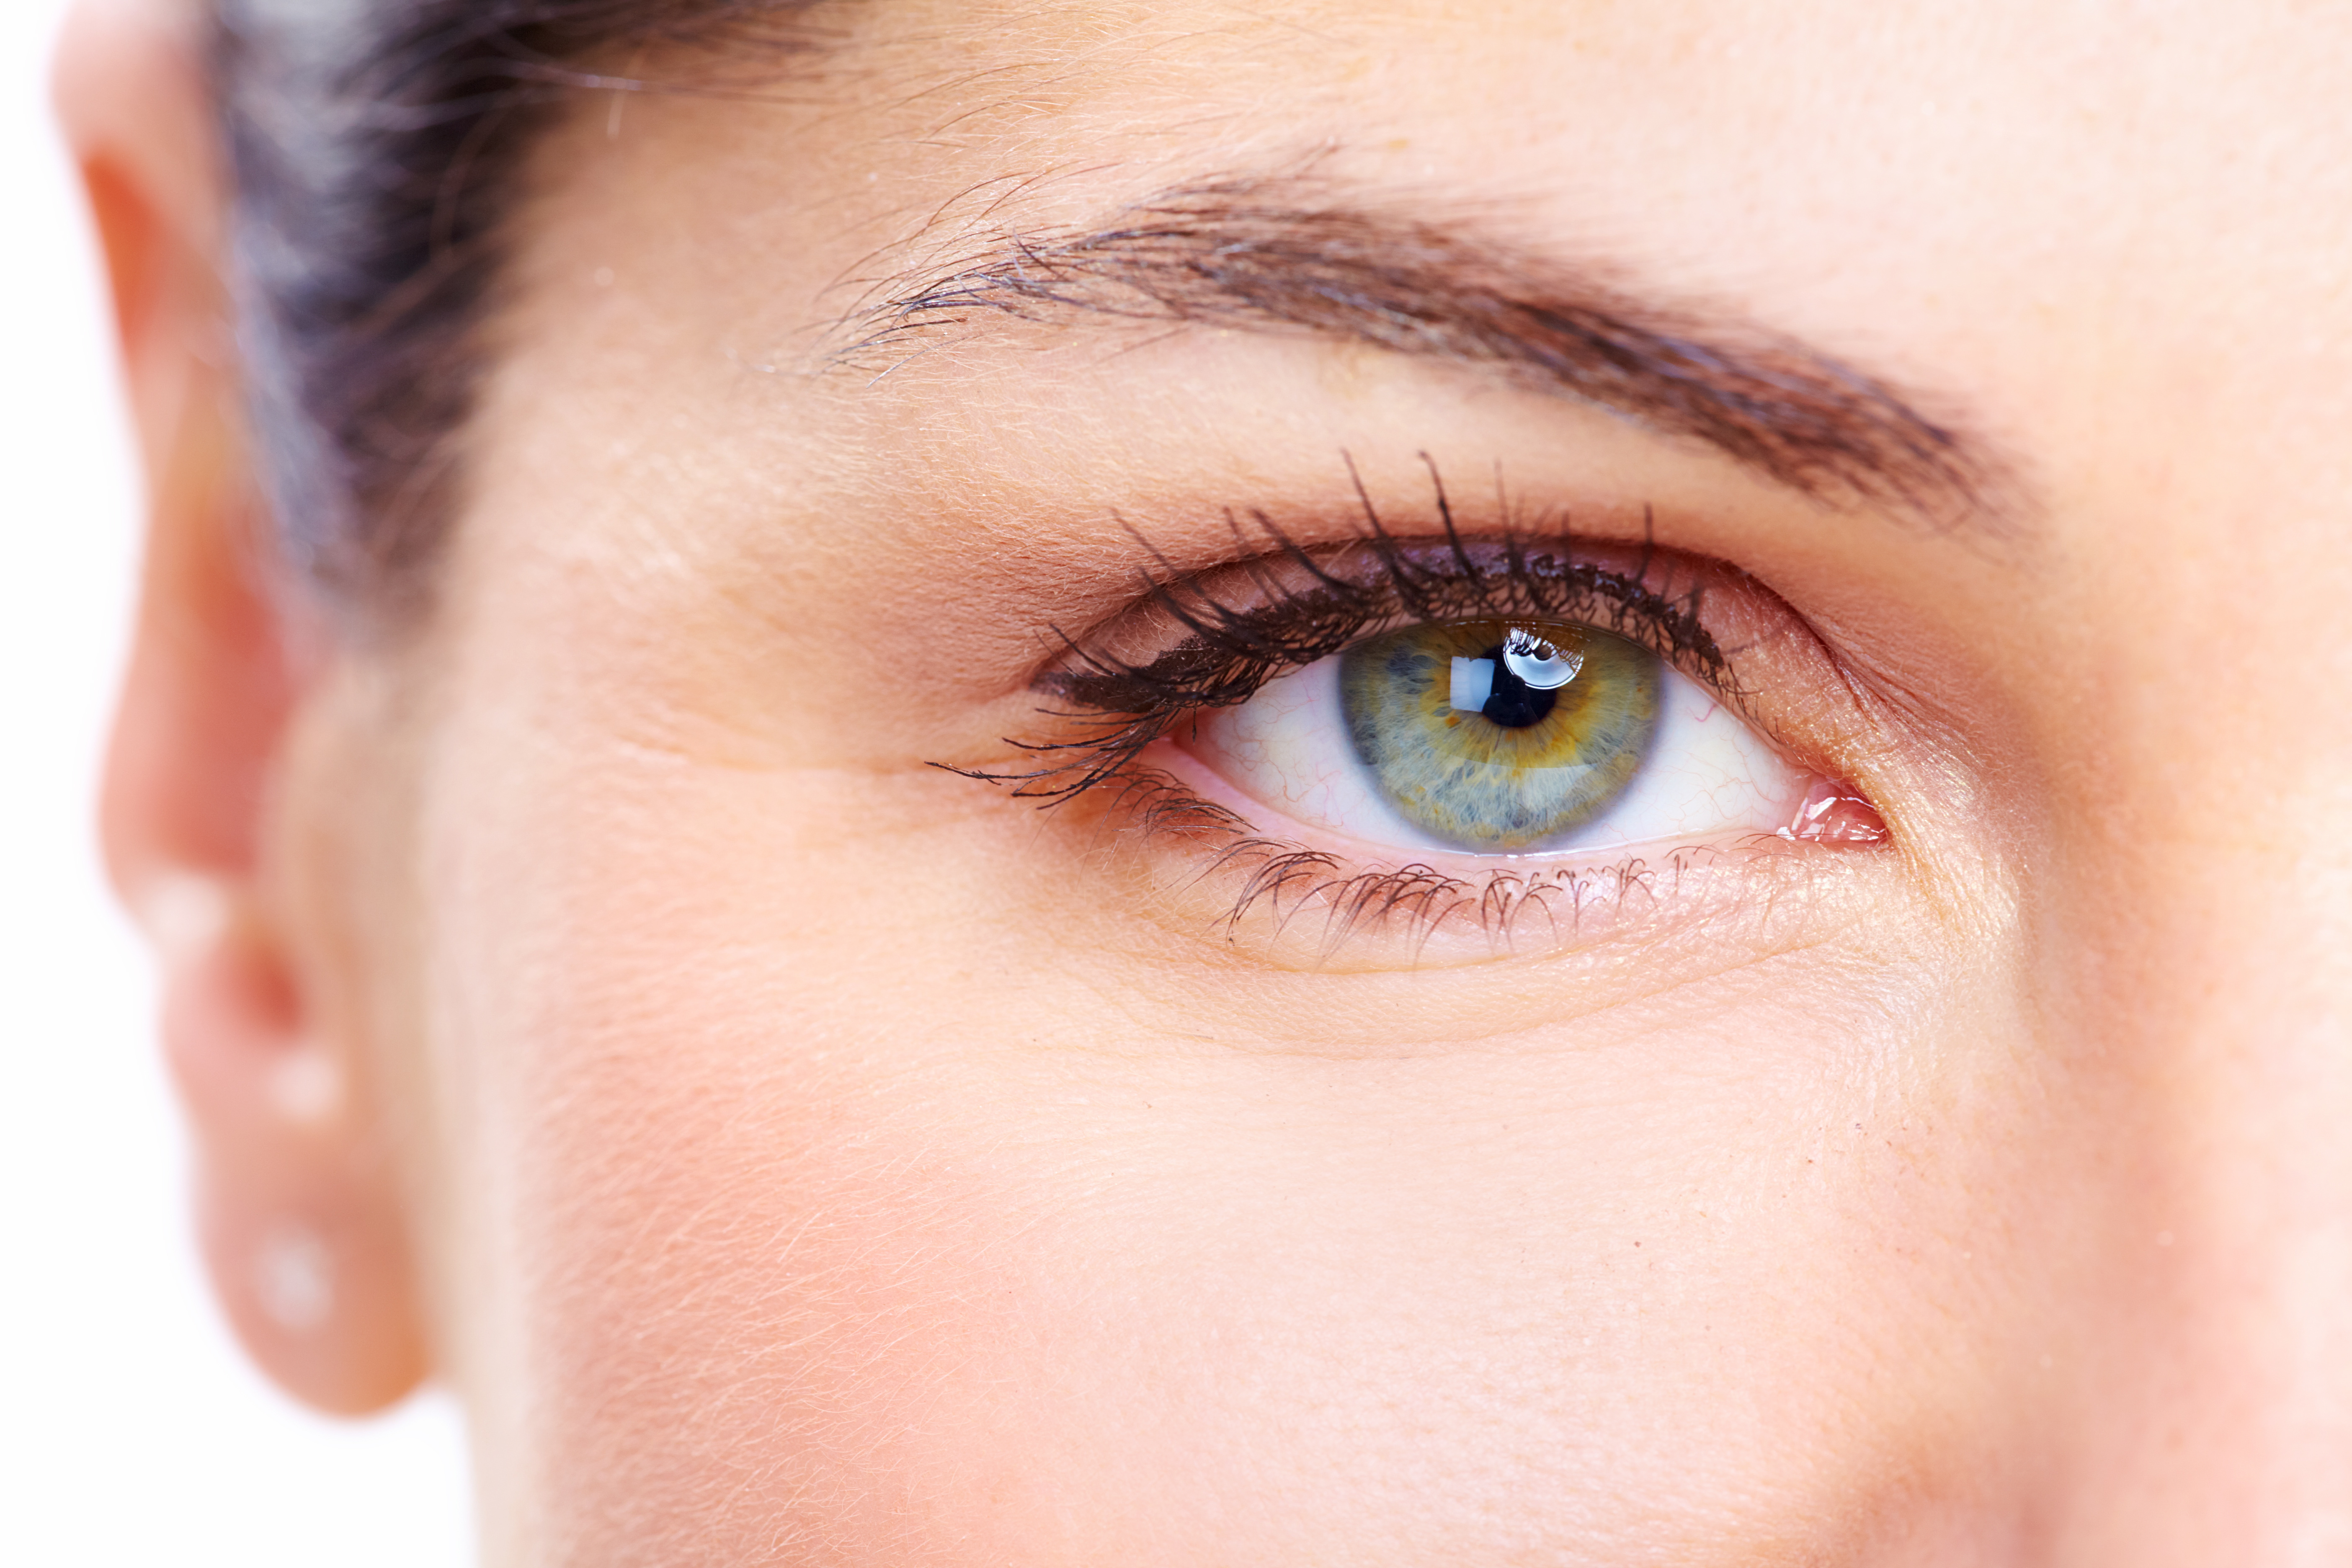 acupuncture for eye health